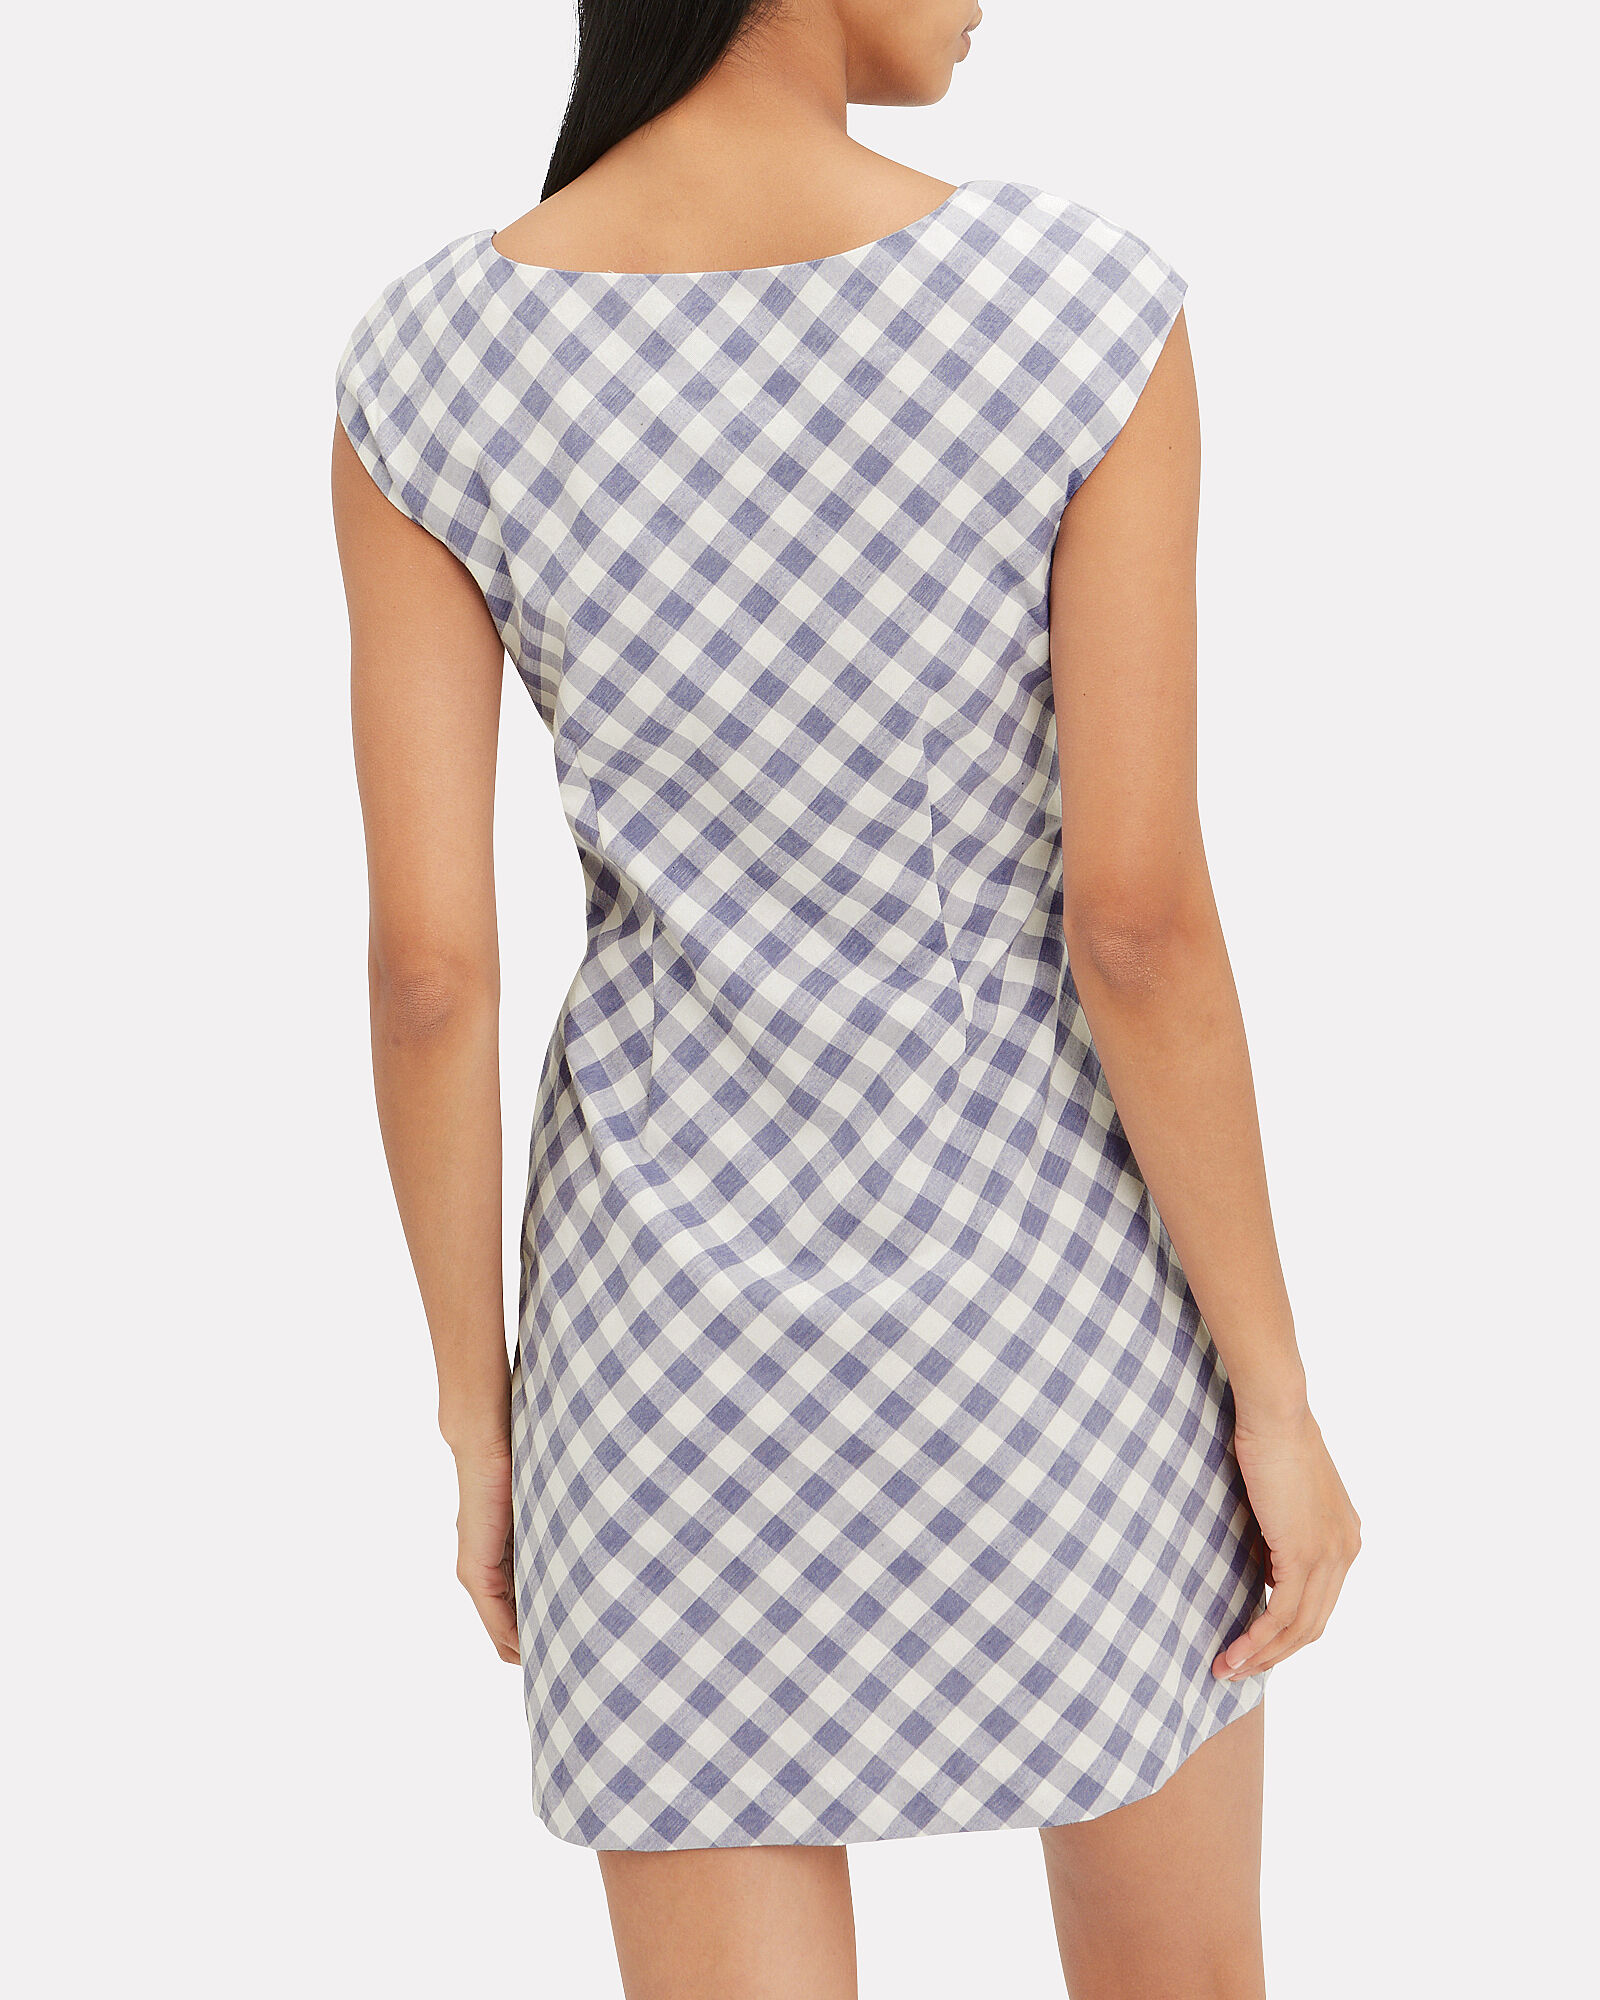 Hadleigh Gingham Mini Dress, NAVY/GINGHAM, hi-res